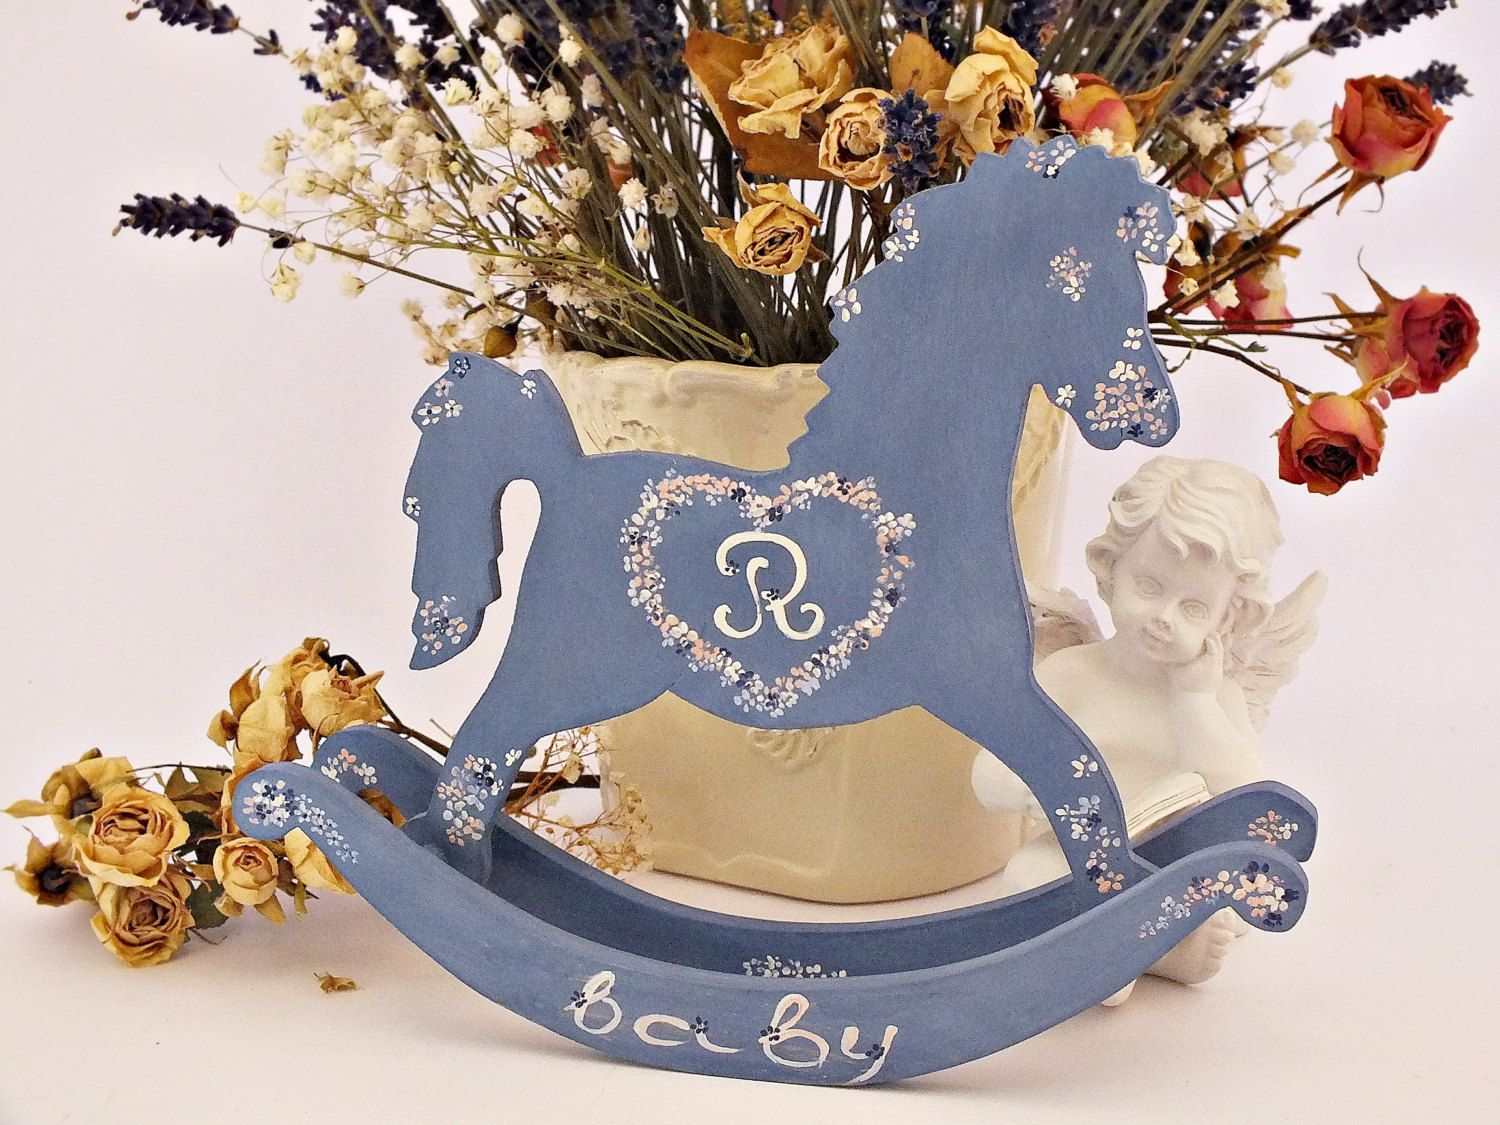 Personalized rocking horse toy decor custom baby shower newborn gift personalized rocking horse toy baby shower gift rocking horse decor personalized baby gifts personalized baby boy negle Gallery